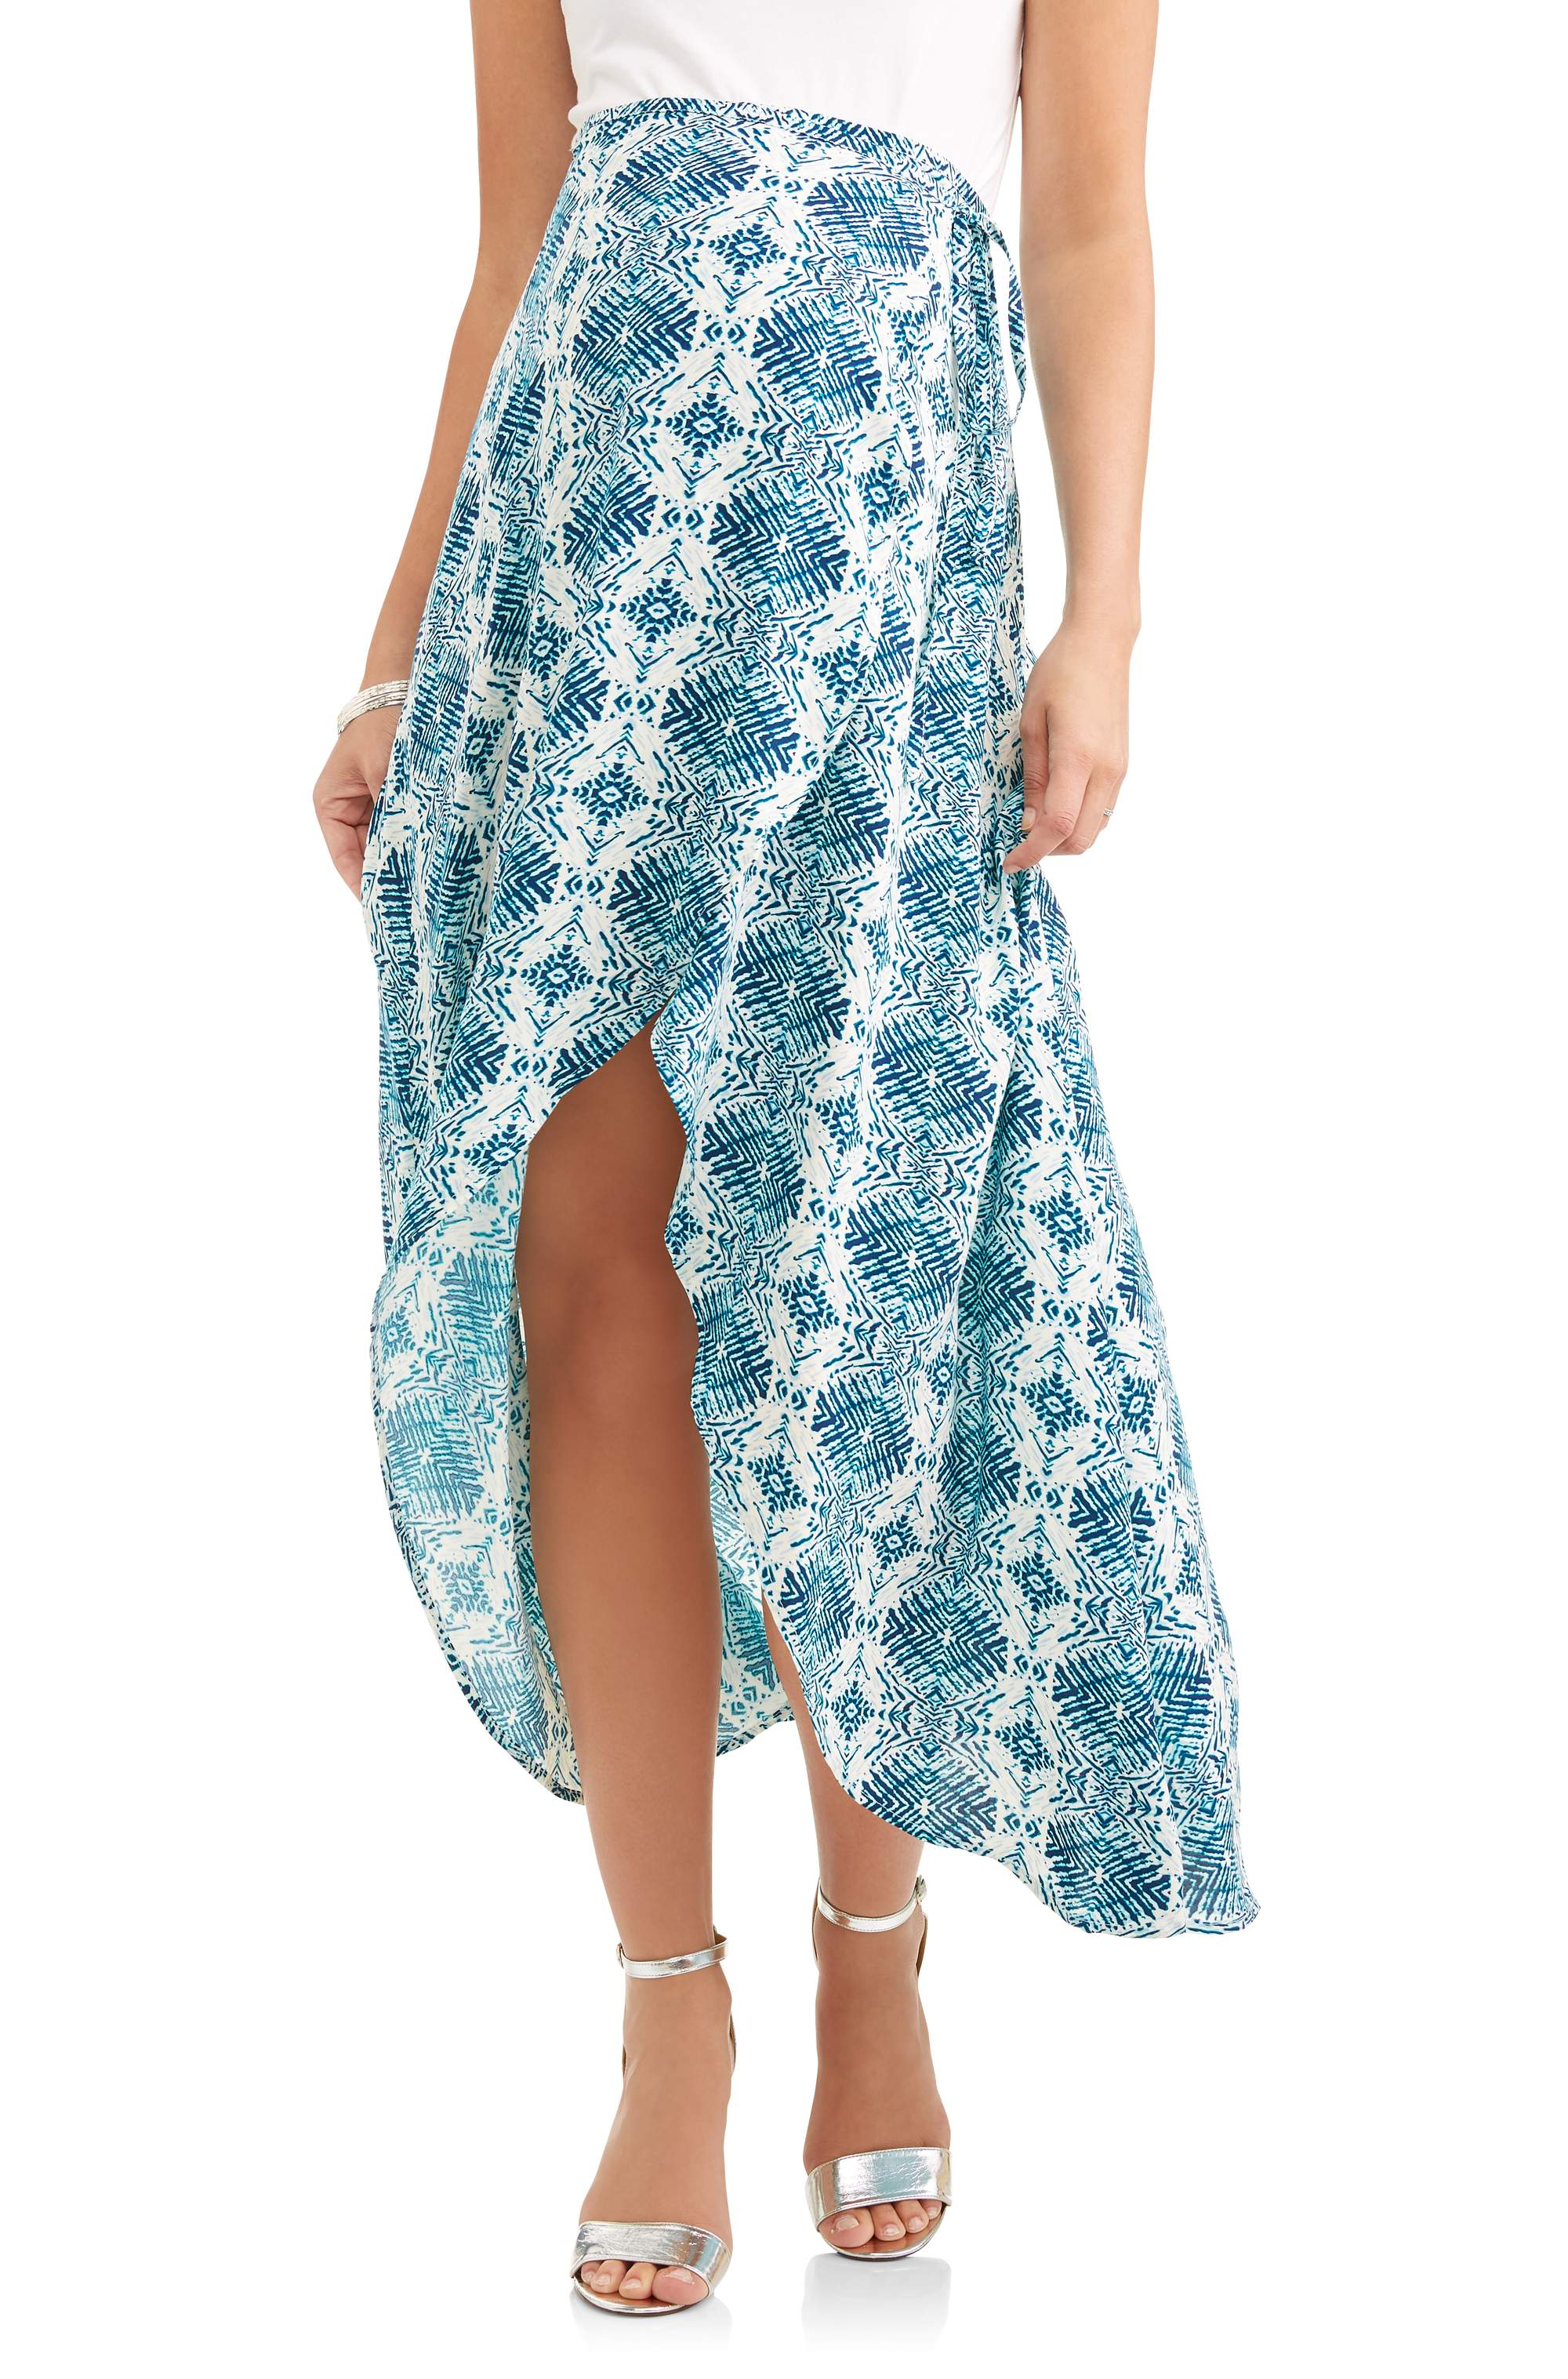 Maternity Wrap Skirt with Side Tie - Walmart.com